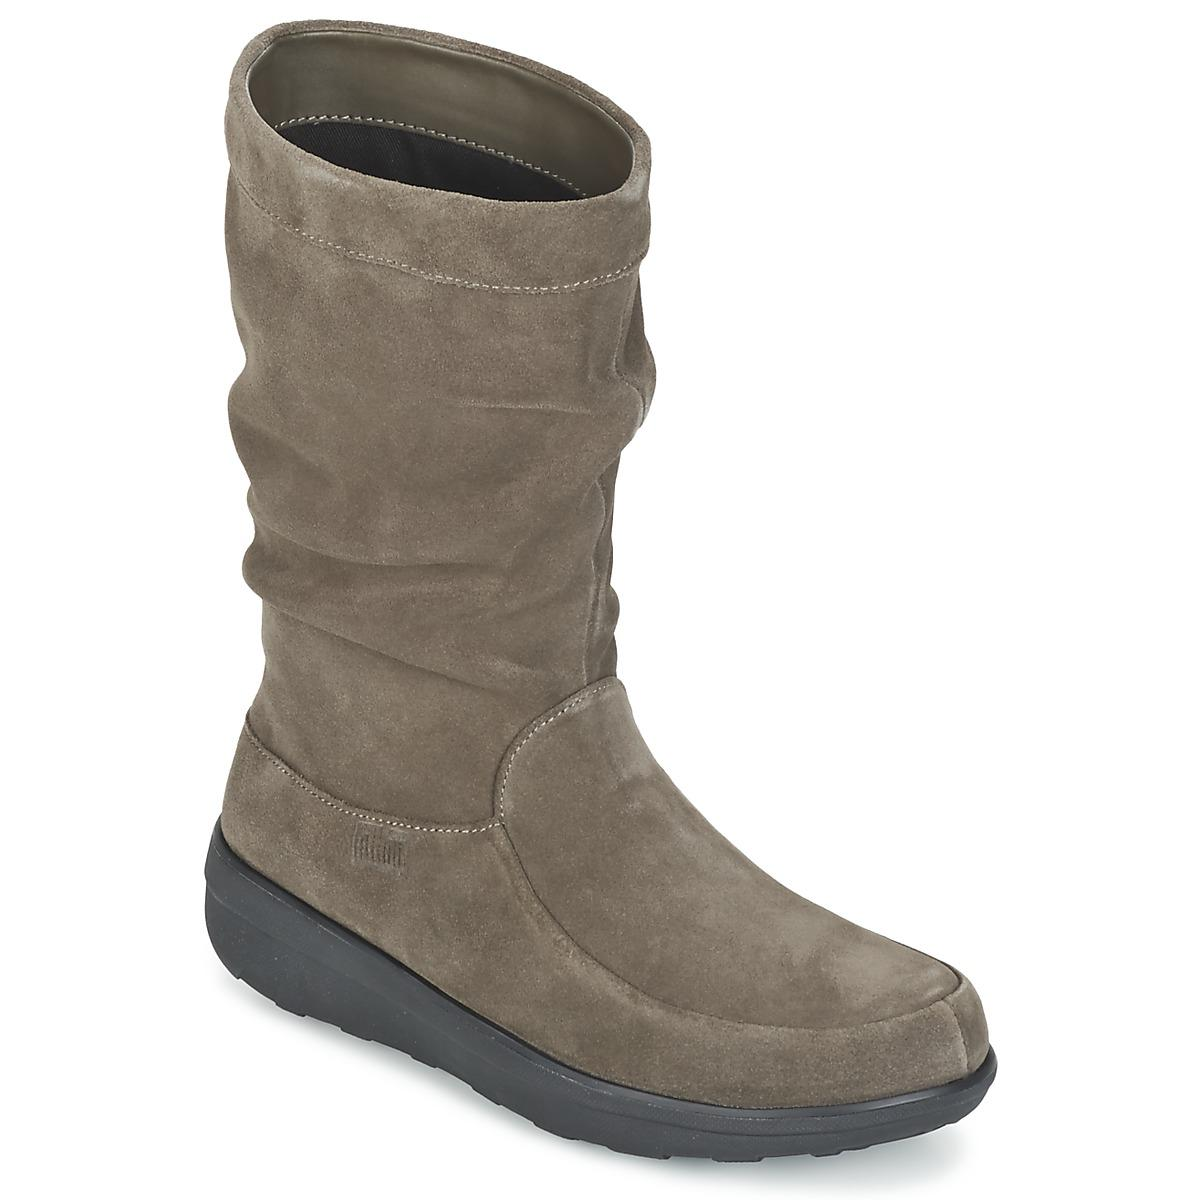 FitFlop Loaf Slouchy Knee Boot Suede clearance new styles free shipping discount footlocker pictures online 100% authentic sale online latest collections online kA5kmwj